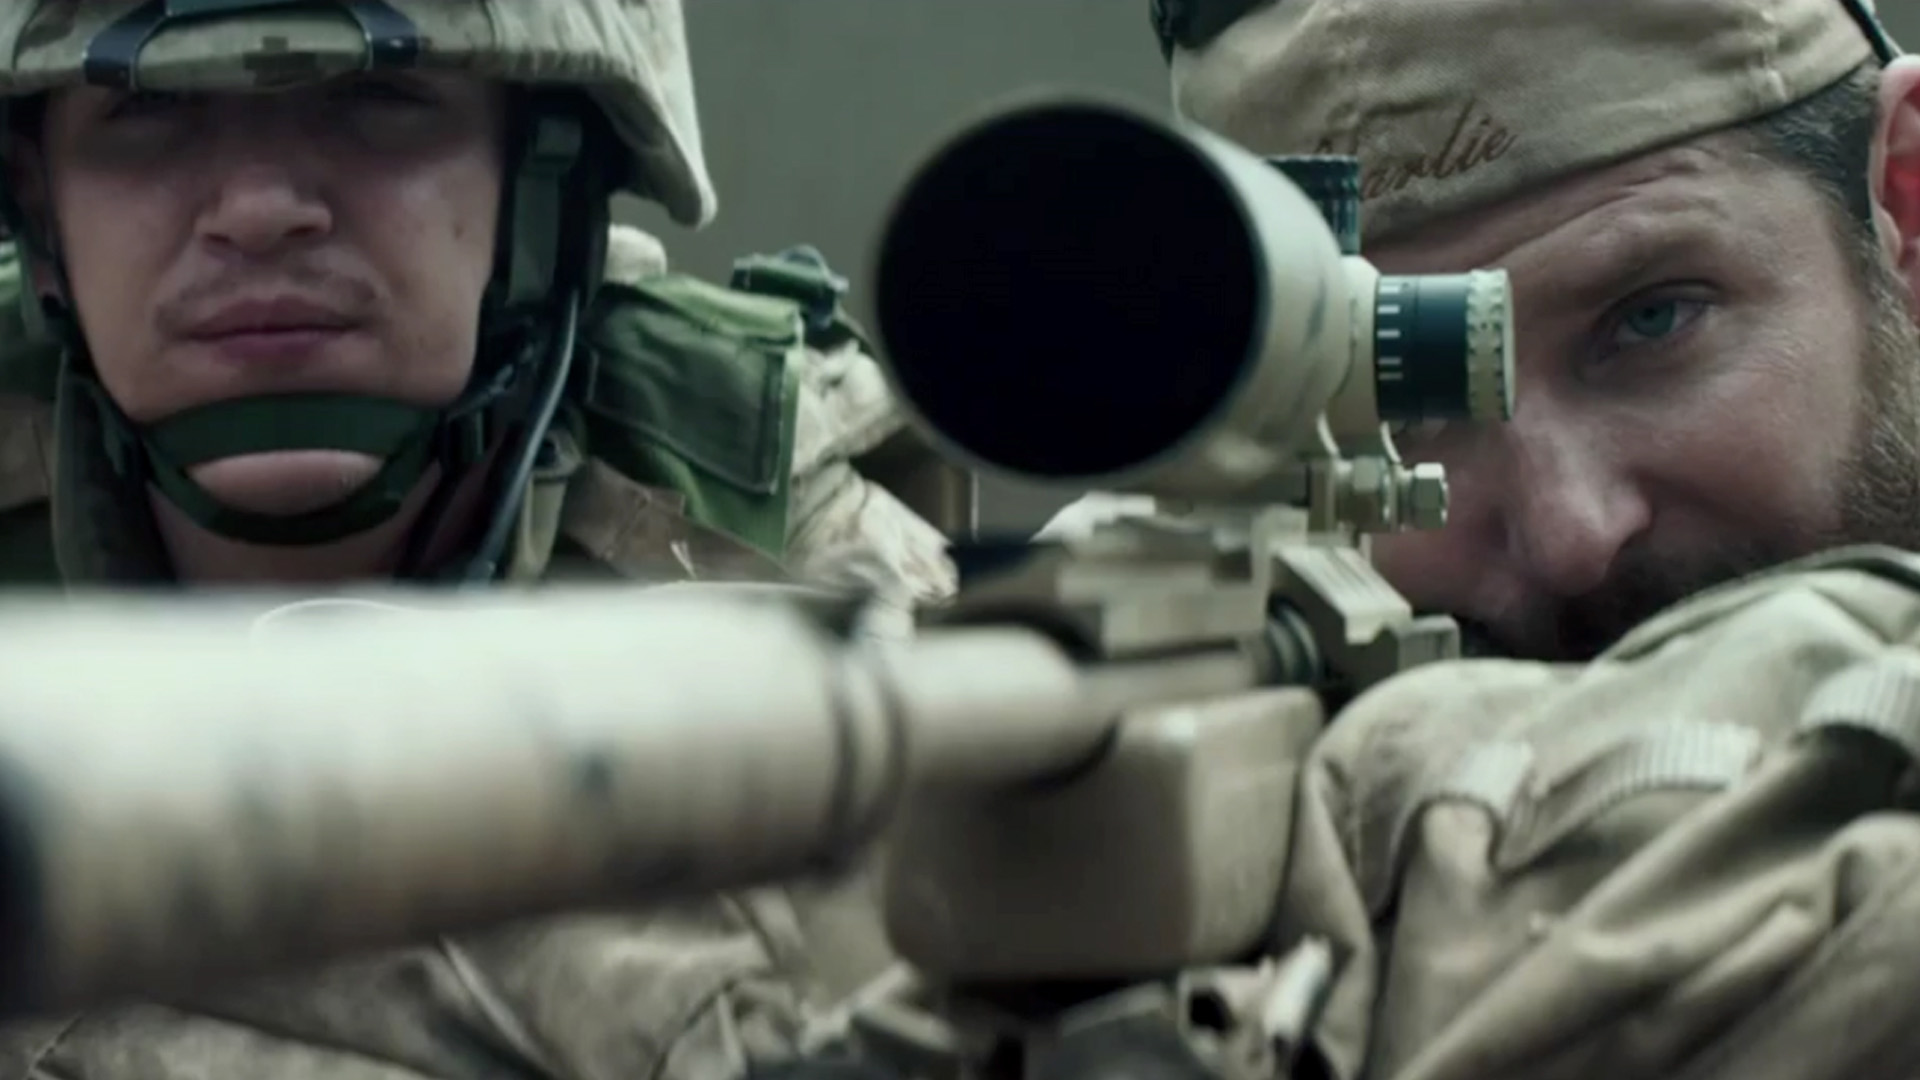 Drawn snipers american sniper On of provokes Sniper' American